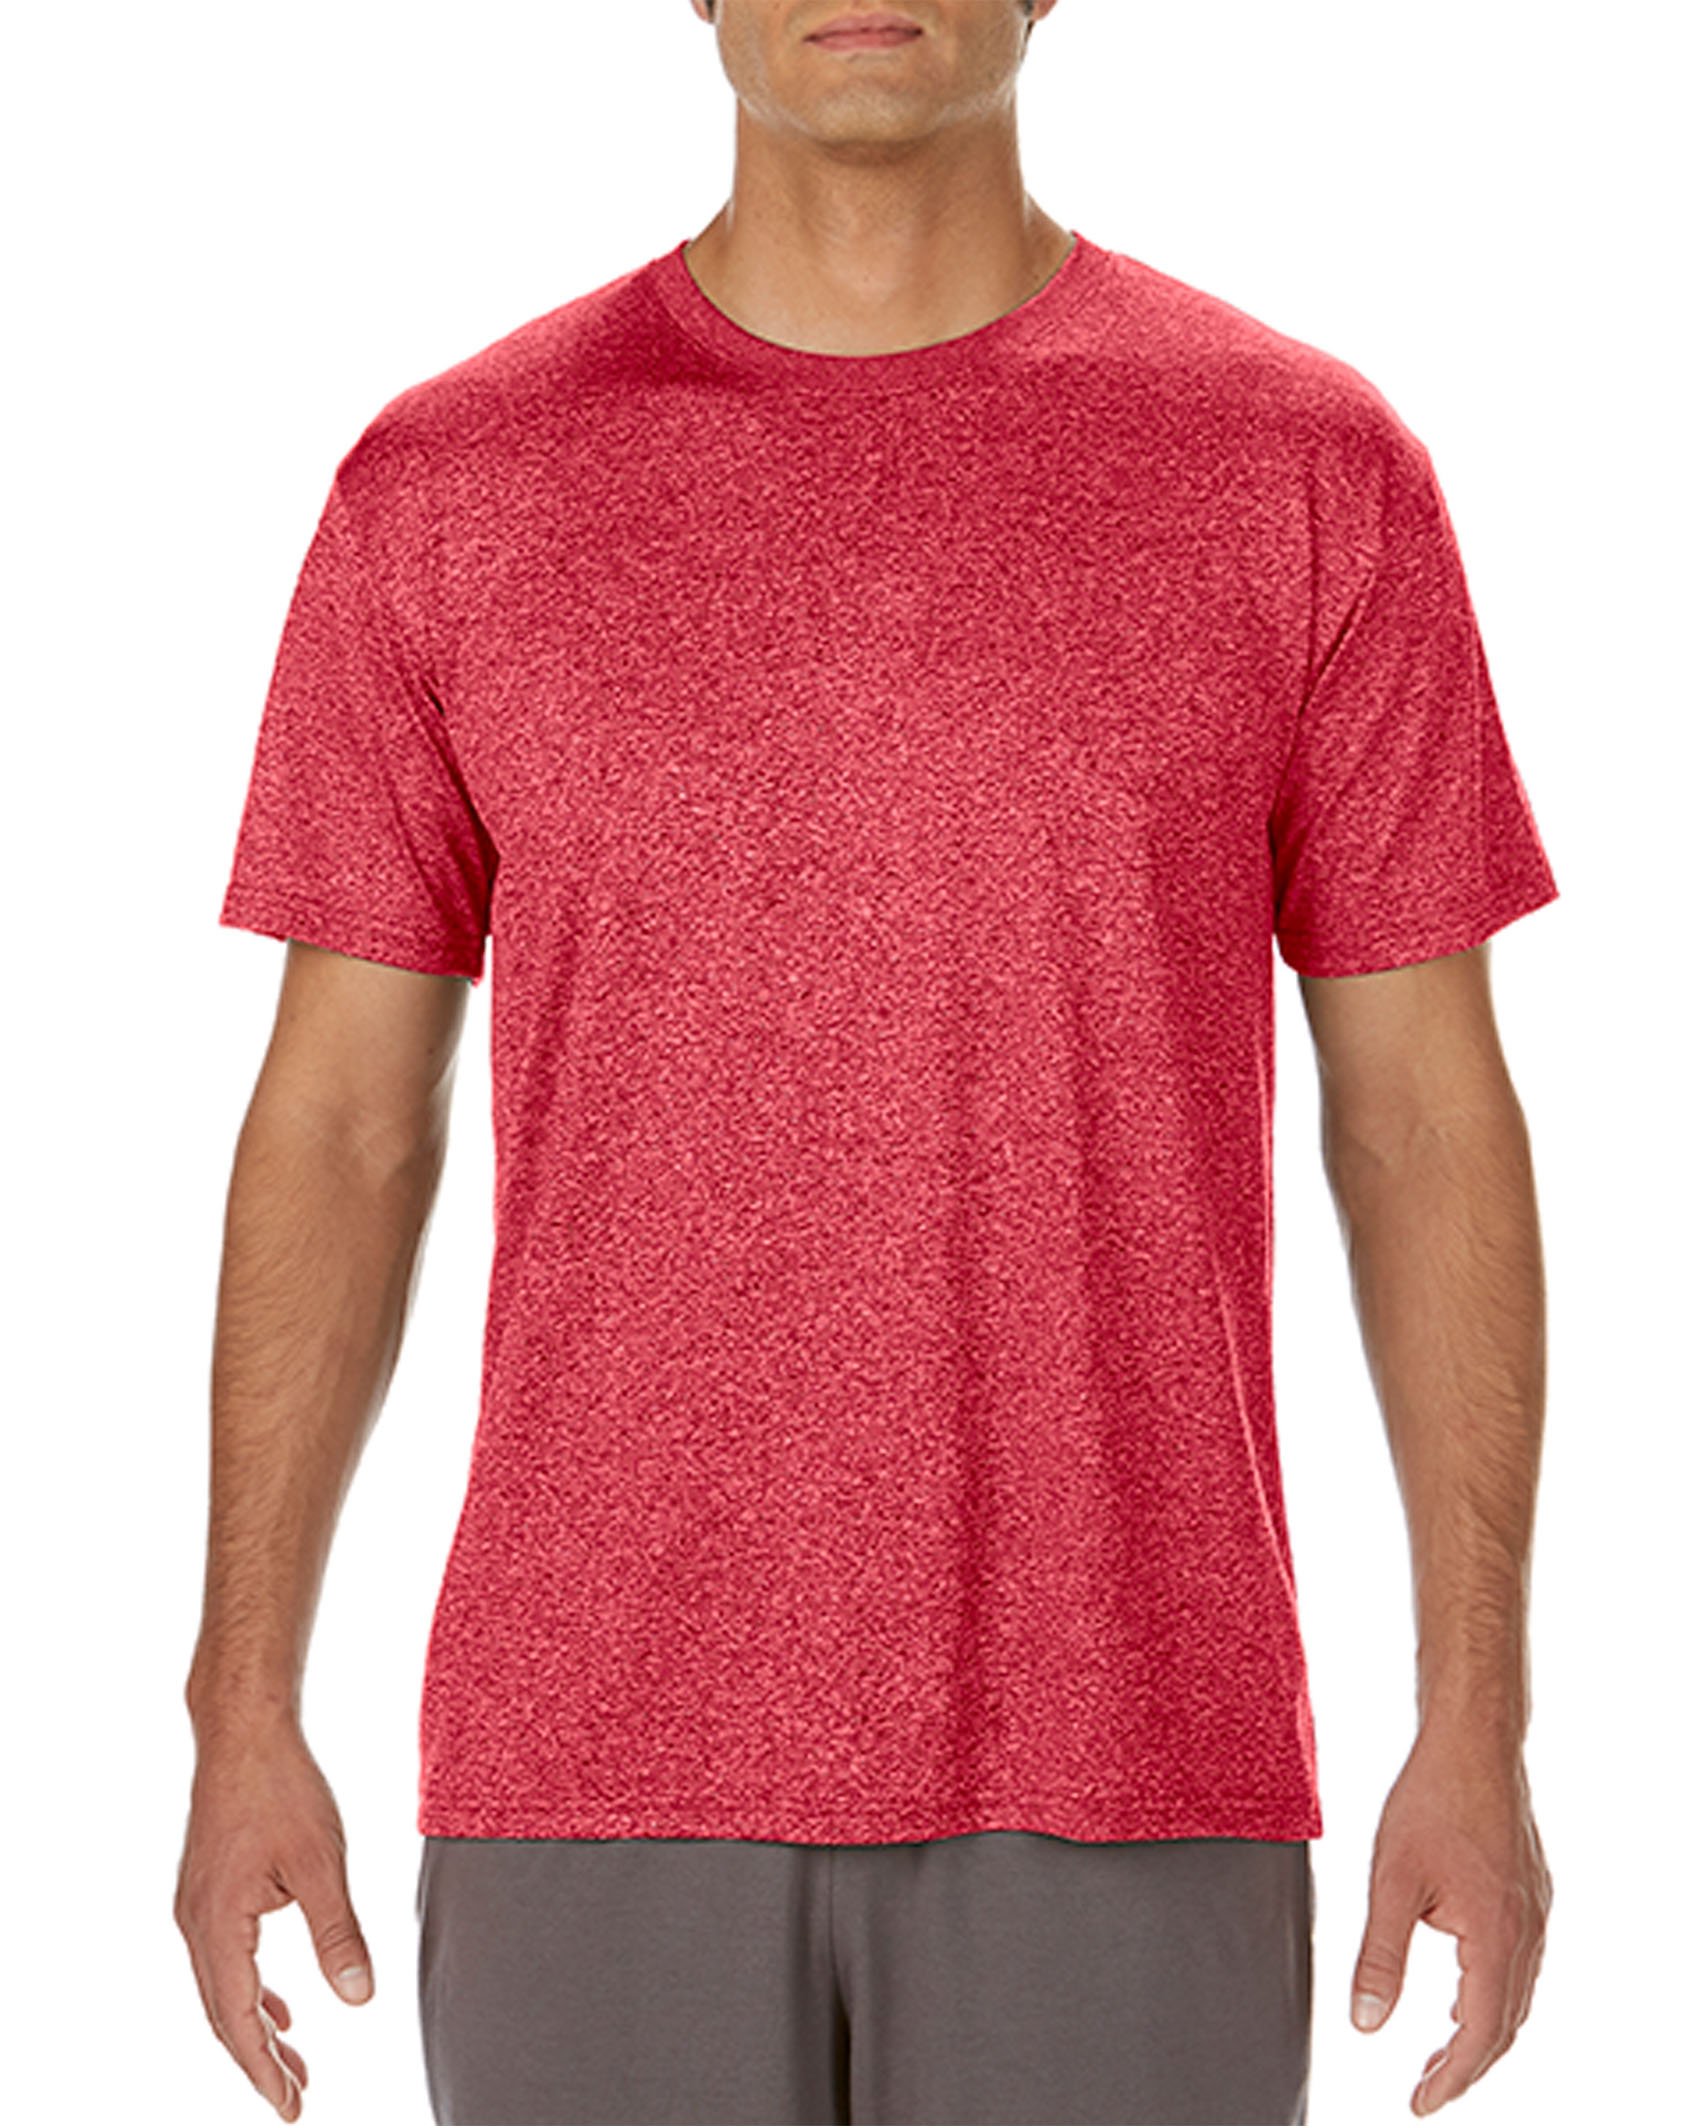 heather sport scarlet red